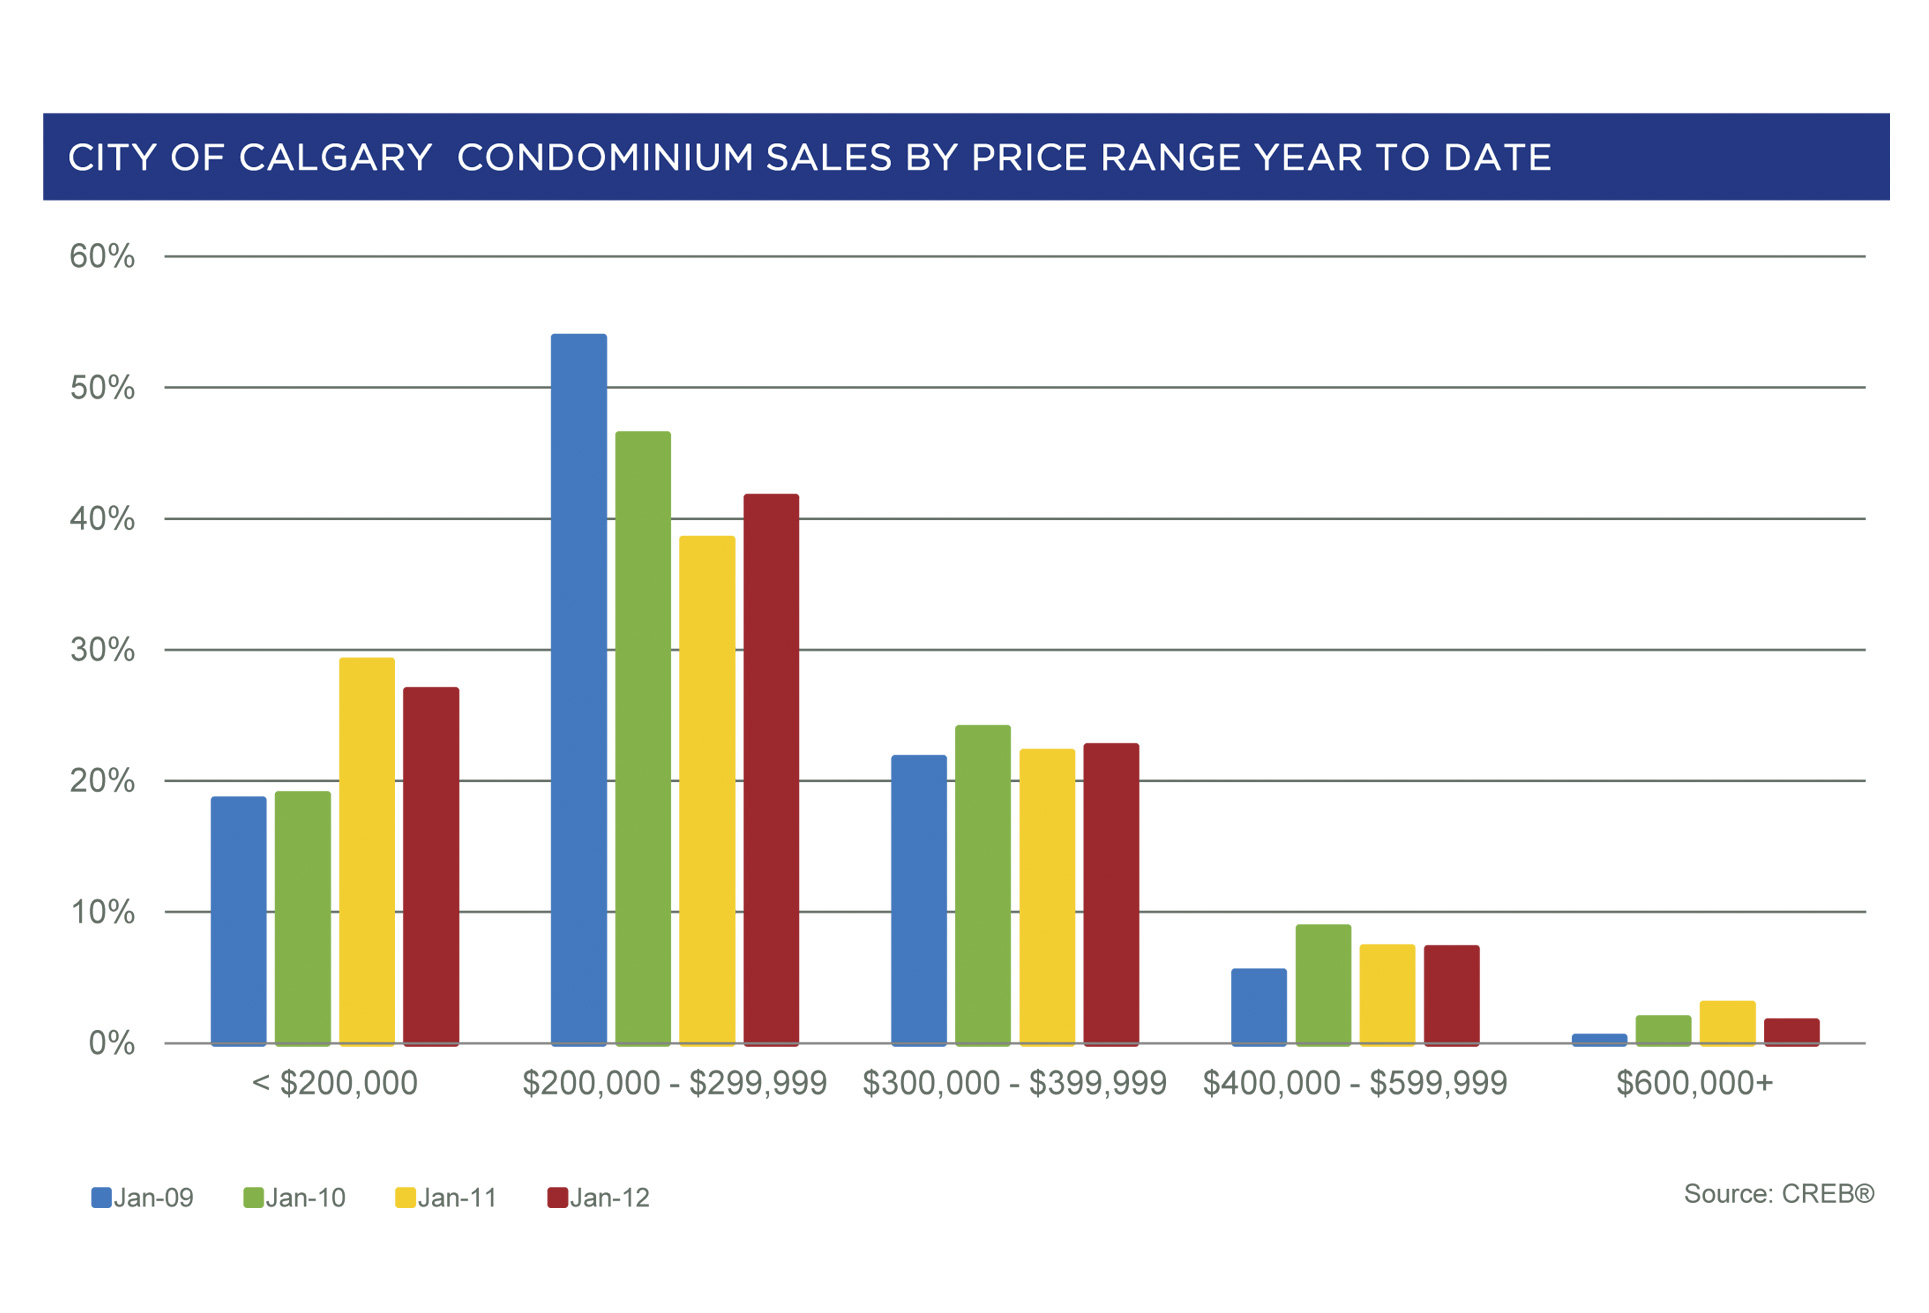 City of Calgary Condominium Home Sales by Price Range